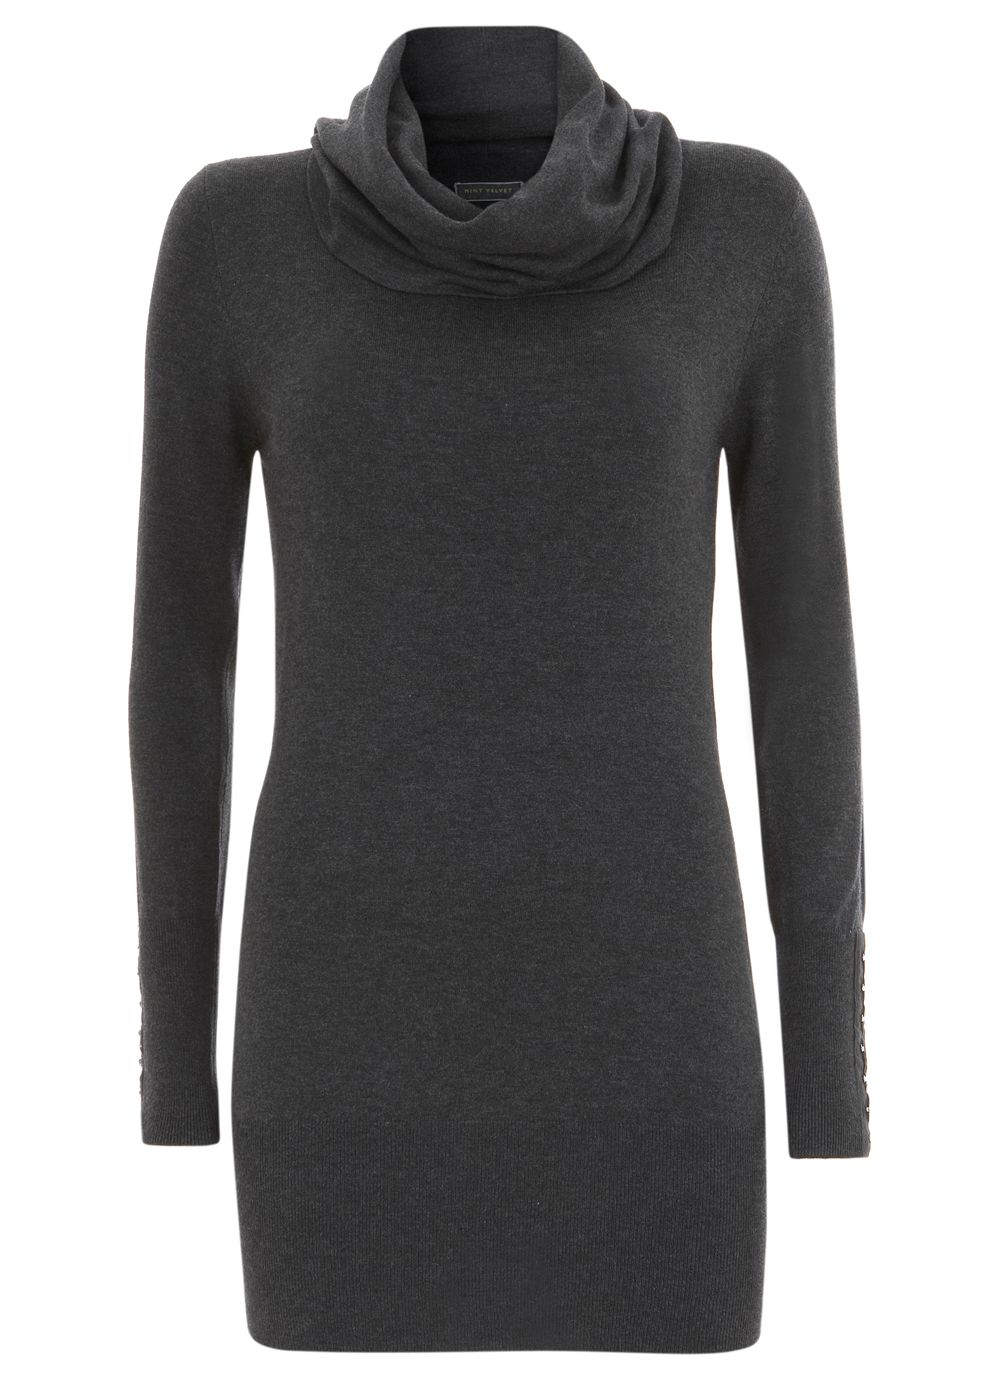 Charcoal cowl neck tunic